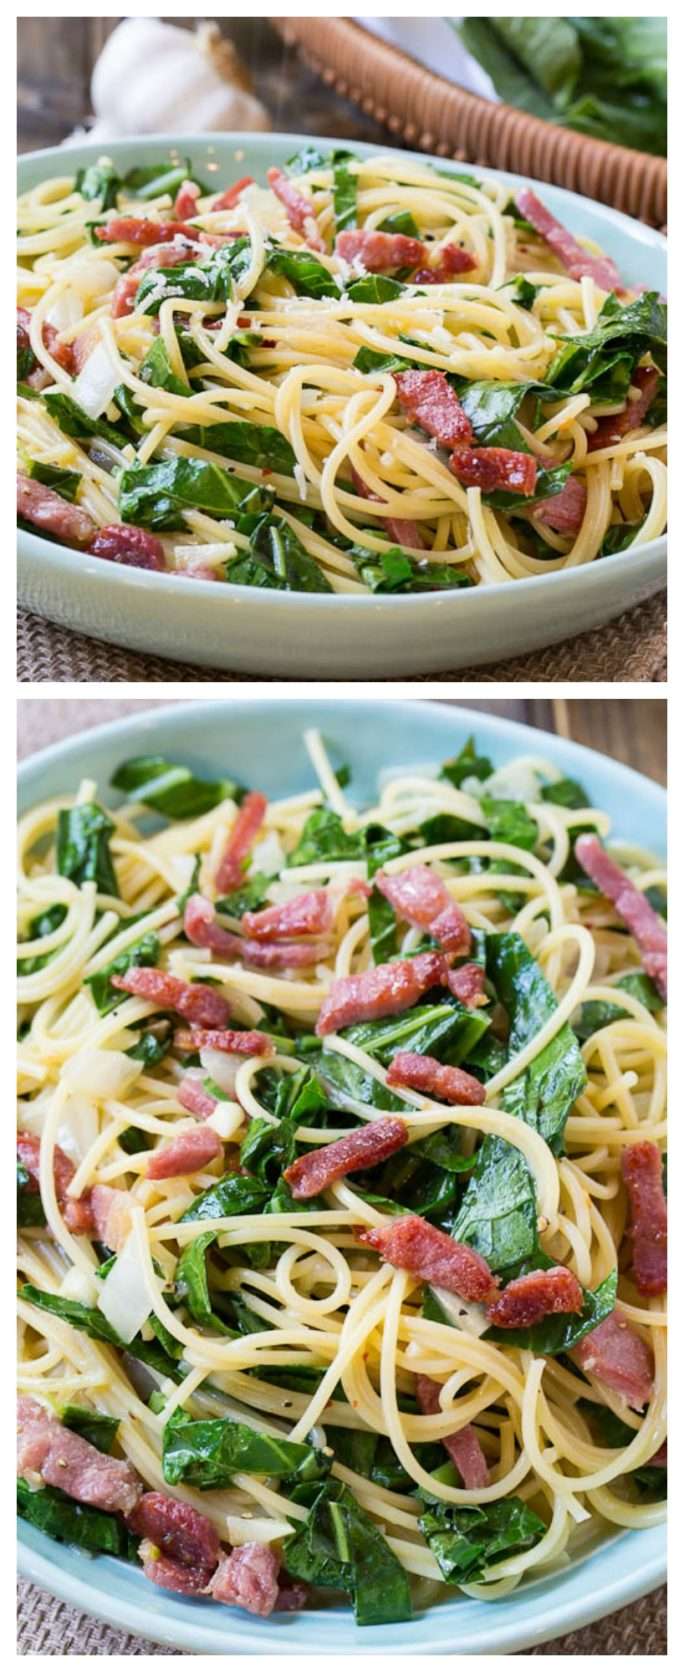 Southern Carbonara Recipe - Spicy Southern Kitchen